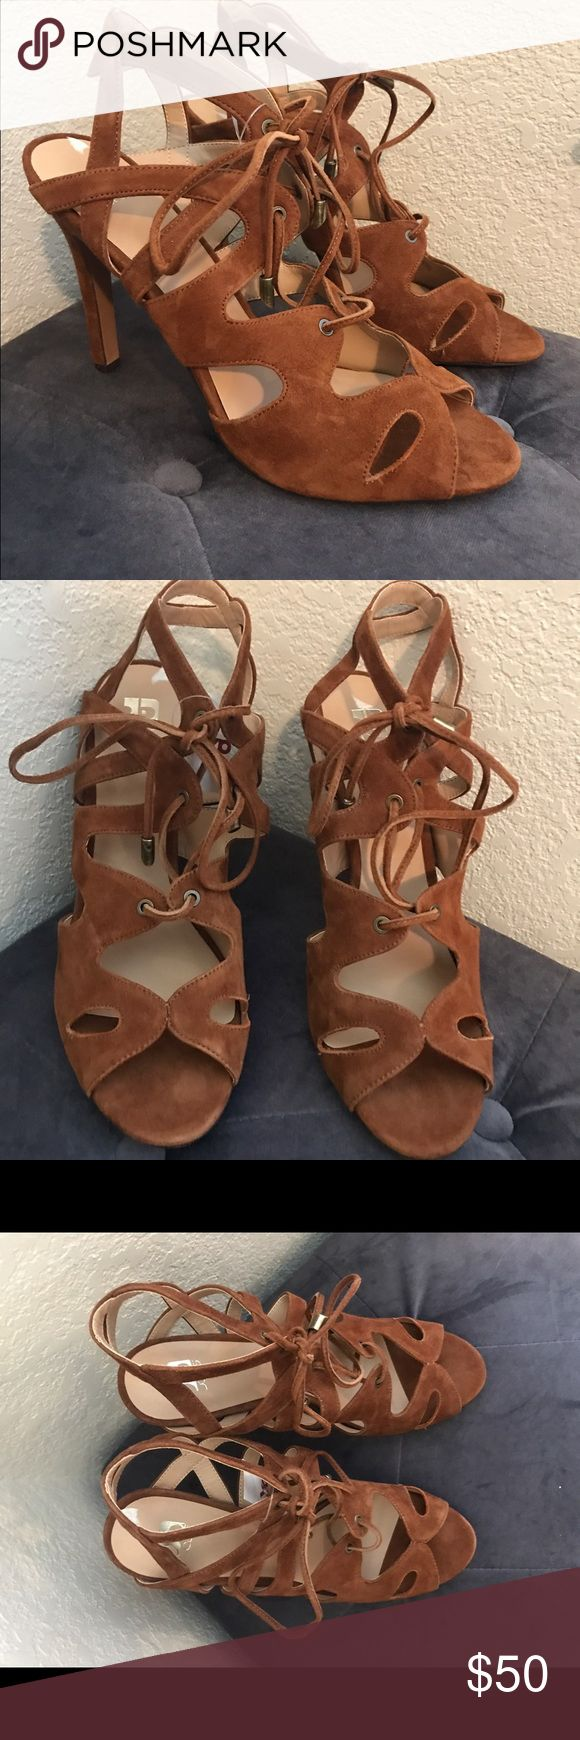 """Joes Jeans Lace Up Sandal Heels Joes Jeans Lace Up Sandal Heels in Brown Suede.    - Open toe - Caged vamp construction - Suede upper - Ghillie lace-up vamp closure - Approx. 4"""" heel  True to size.  Never worn, new with tags. Joe's Jeans Shoes Sandals"""